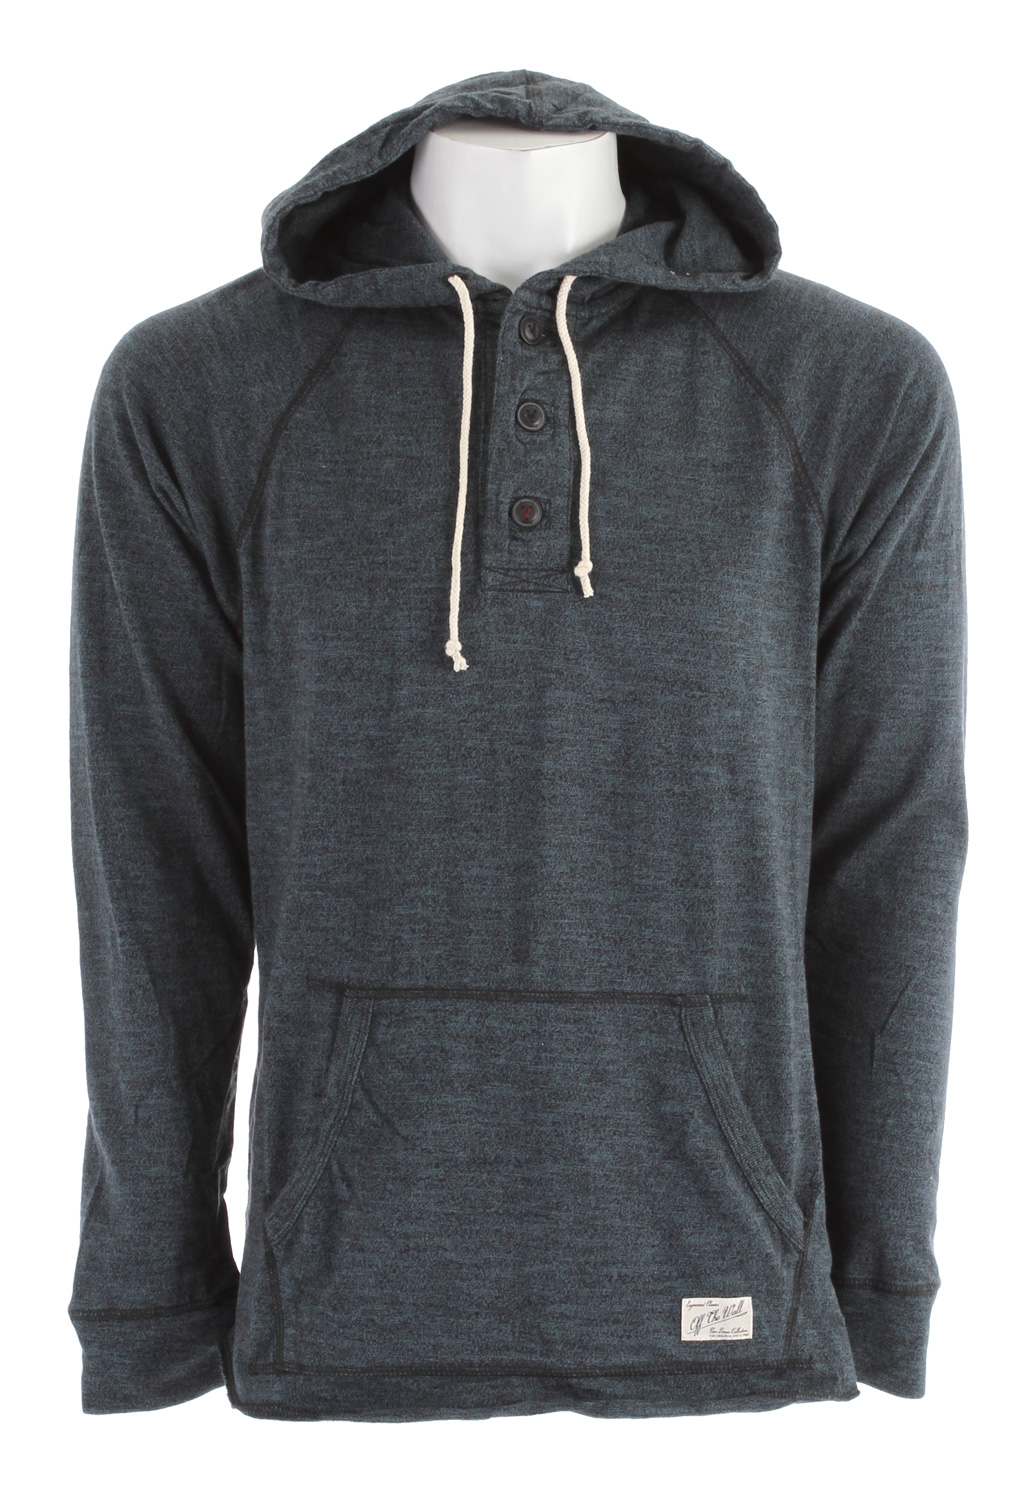 Skateboard Key Features of the Vans Lindero Hoodie: 100% Cotton long sleeve grindle jersey pullover henley hoodie with drawstrings Front pouch pocket with Vans patch label - $40.95